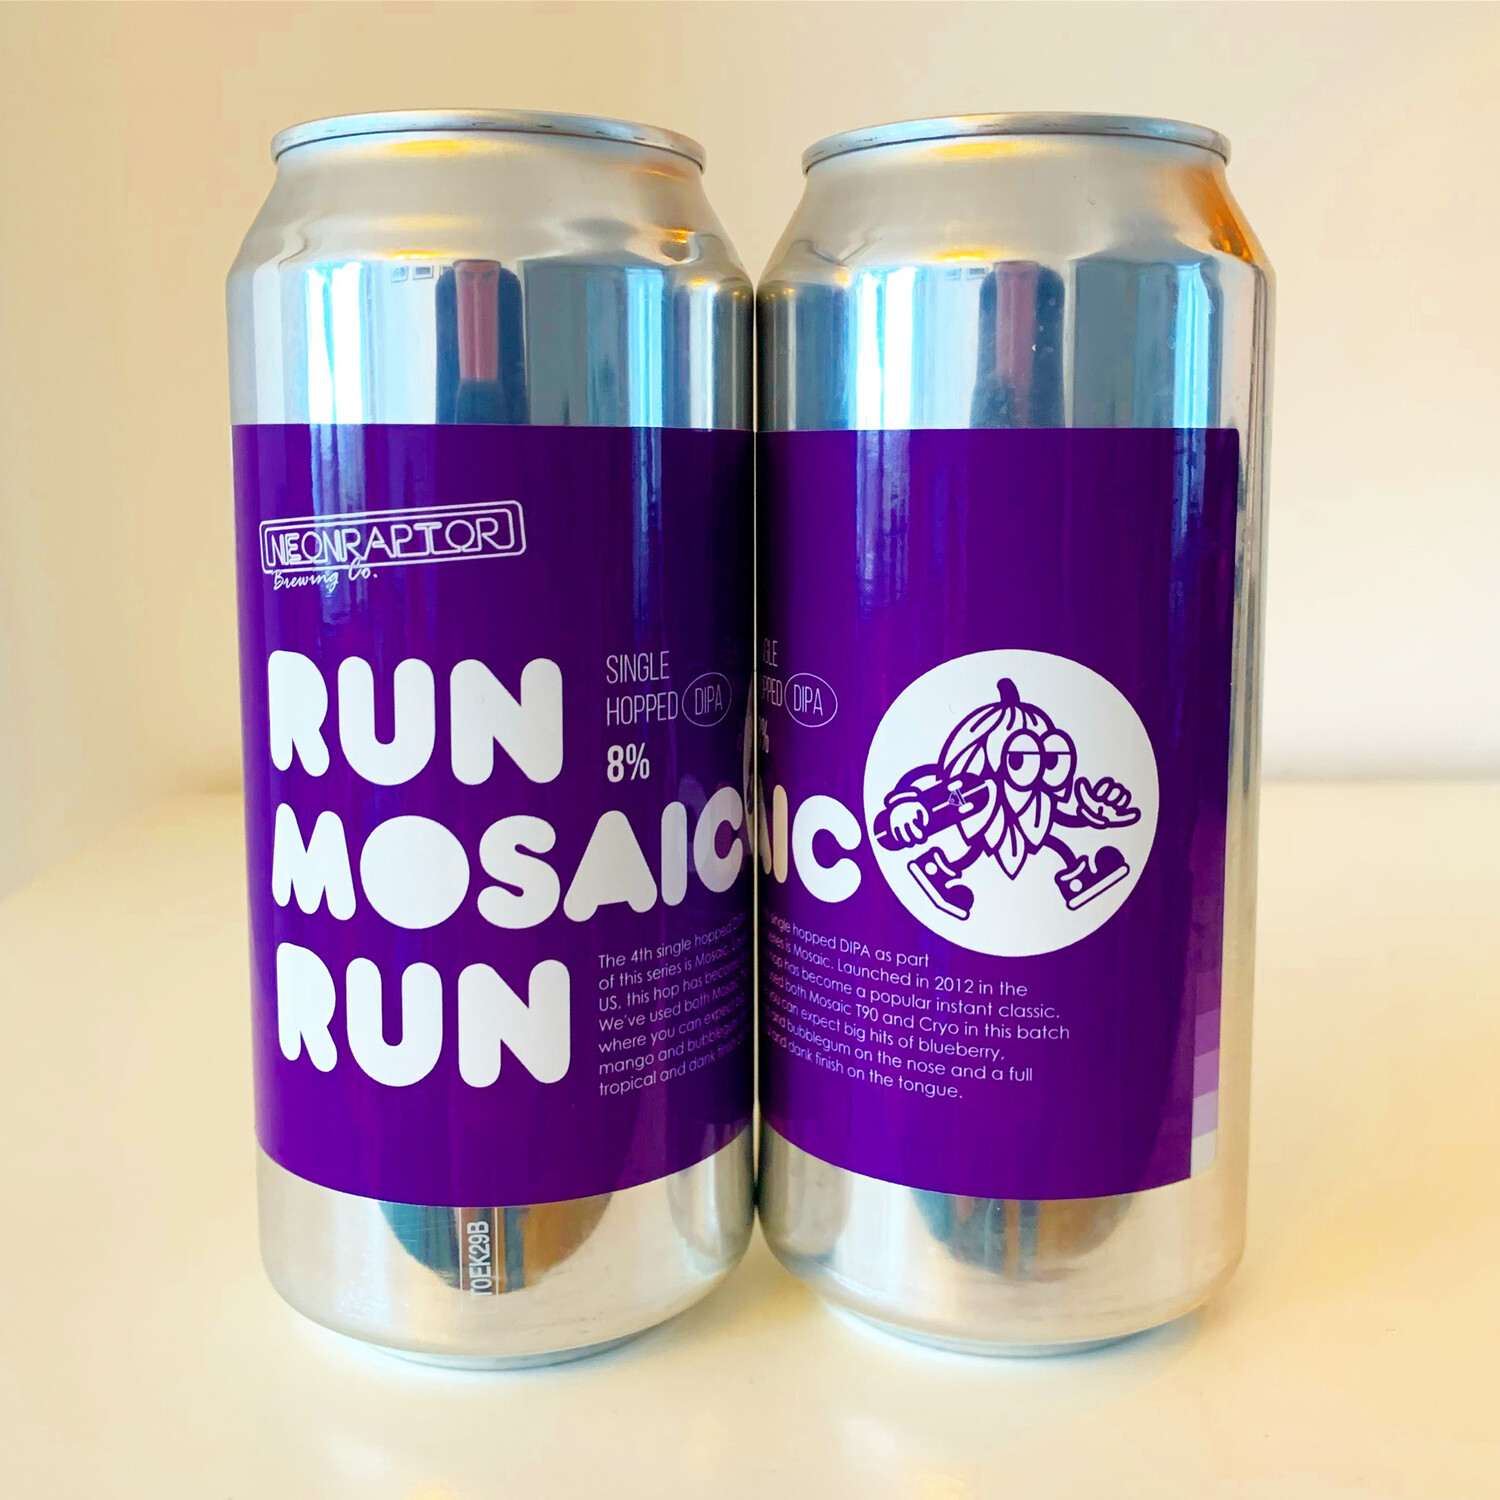 NEW Neon Raptor 'Run Mosaic Run' DIPA 440ml - 8%